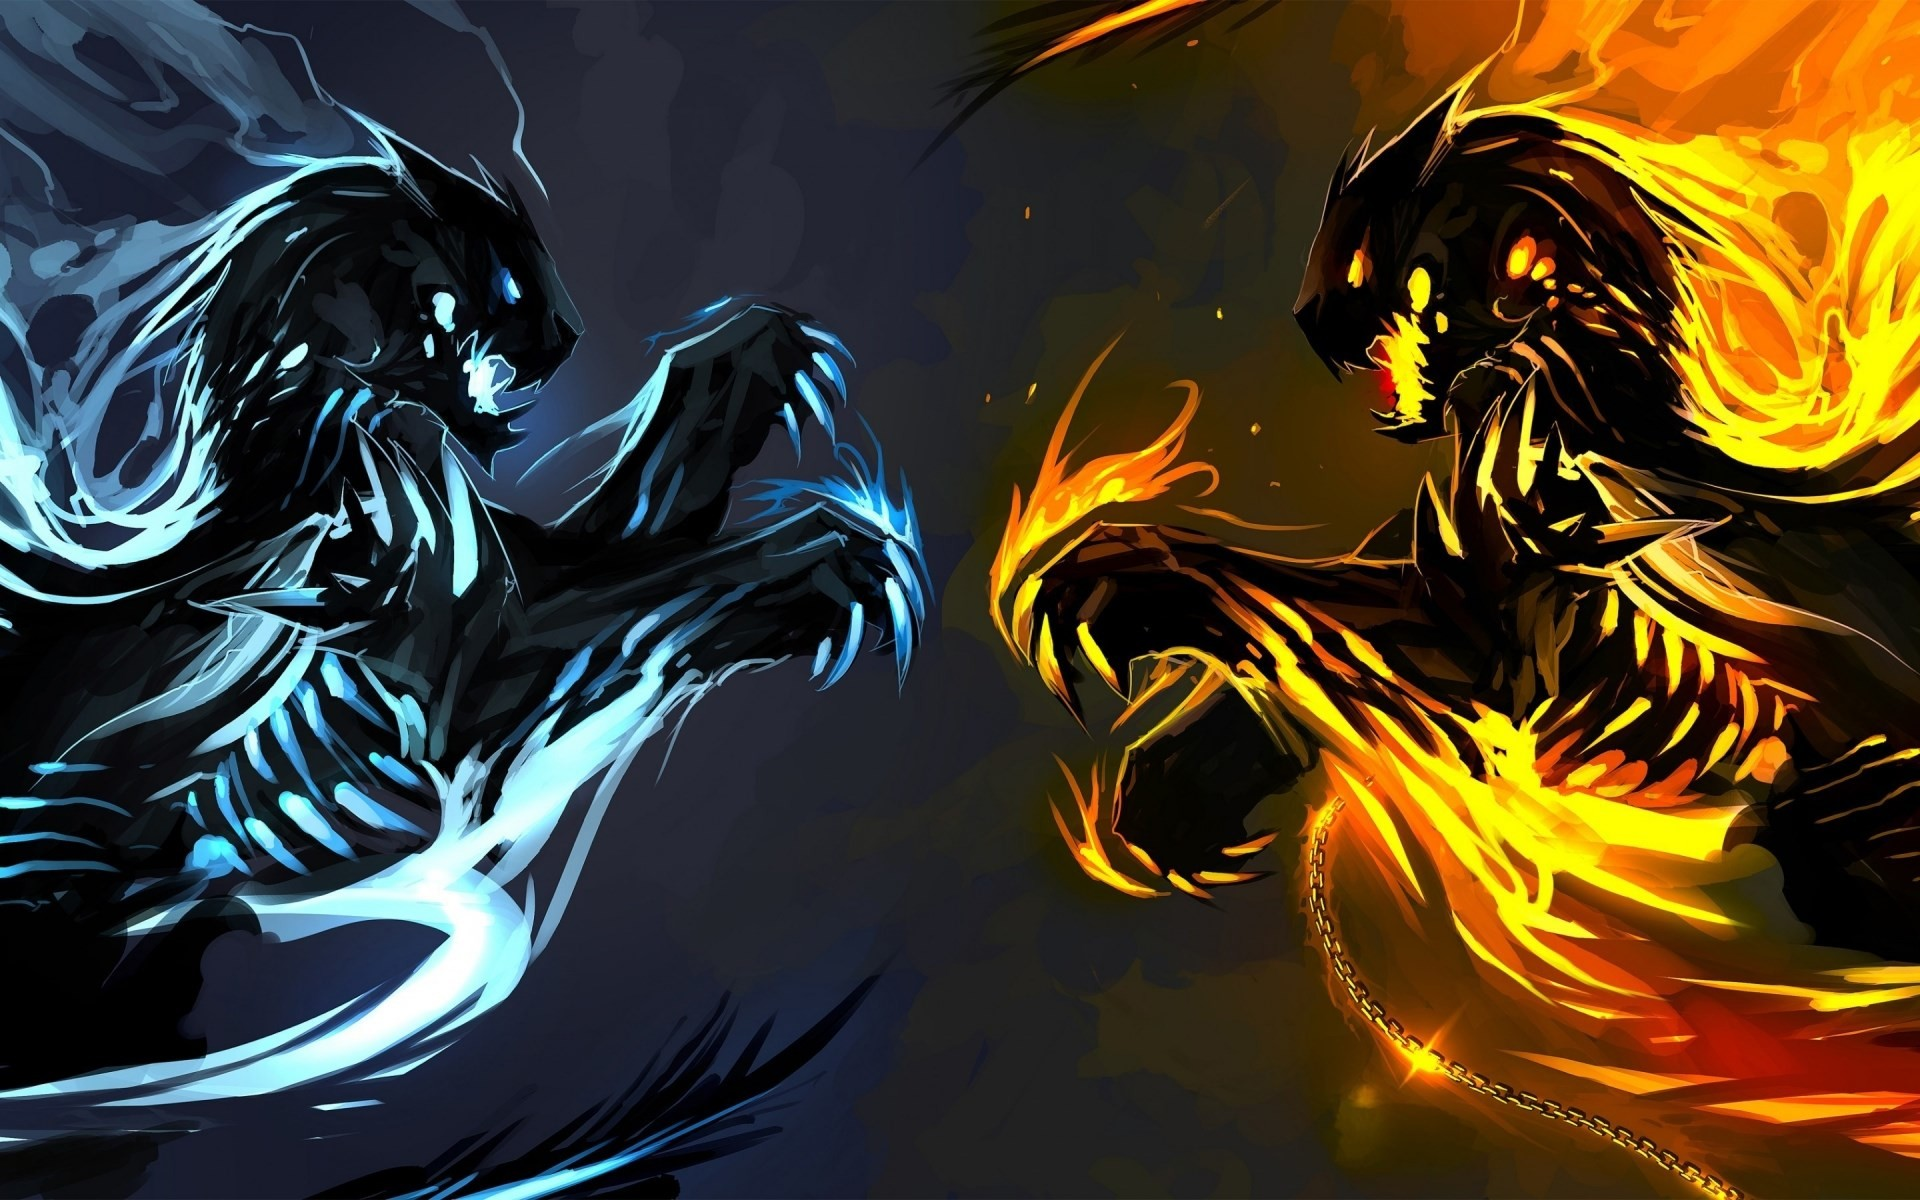 Cool Fire Backgrounds (66+ images)